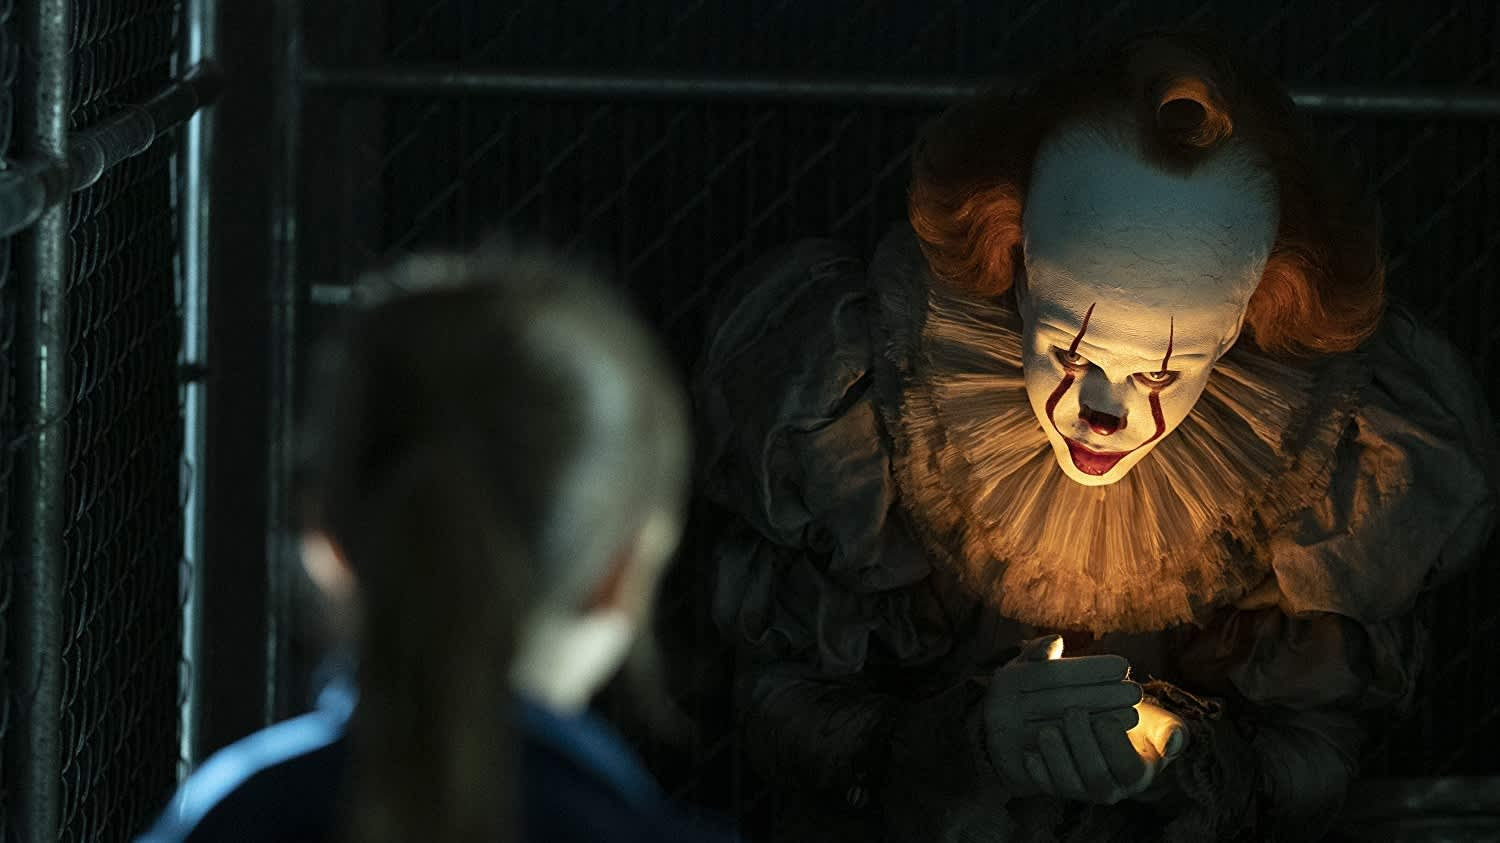 'It: Chapter Two' nabs second-highest horror movie opening with $91 million haul